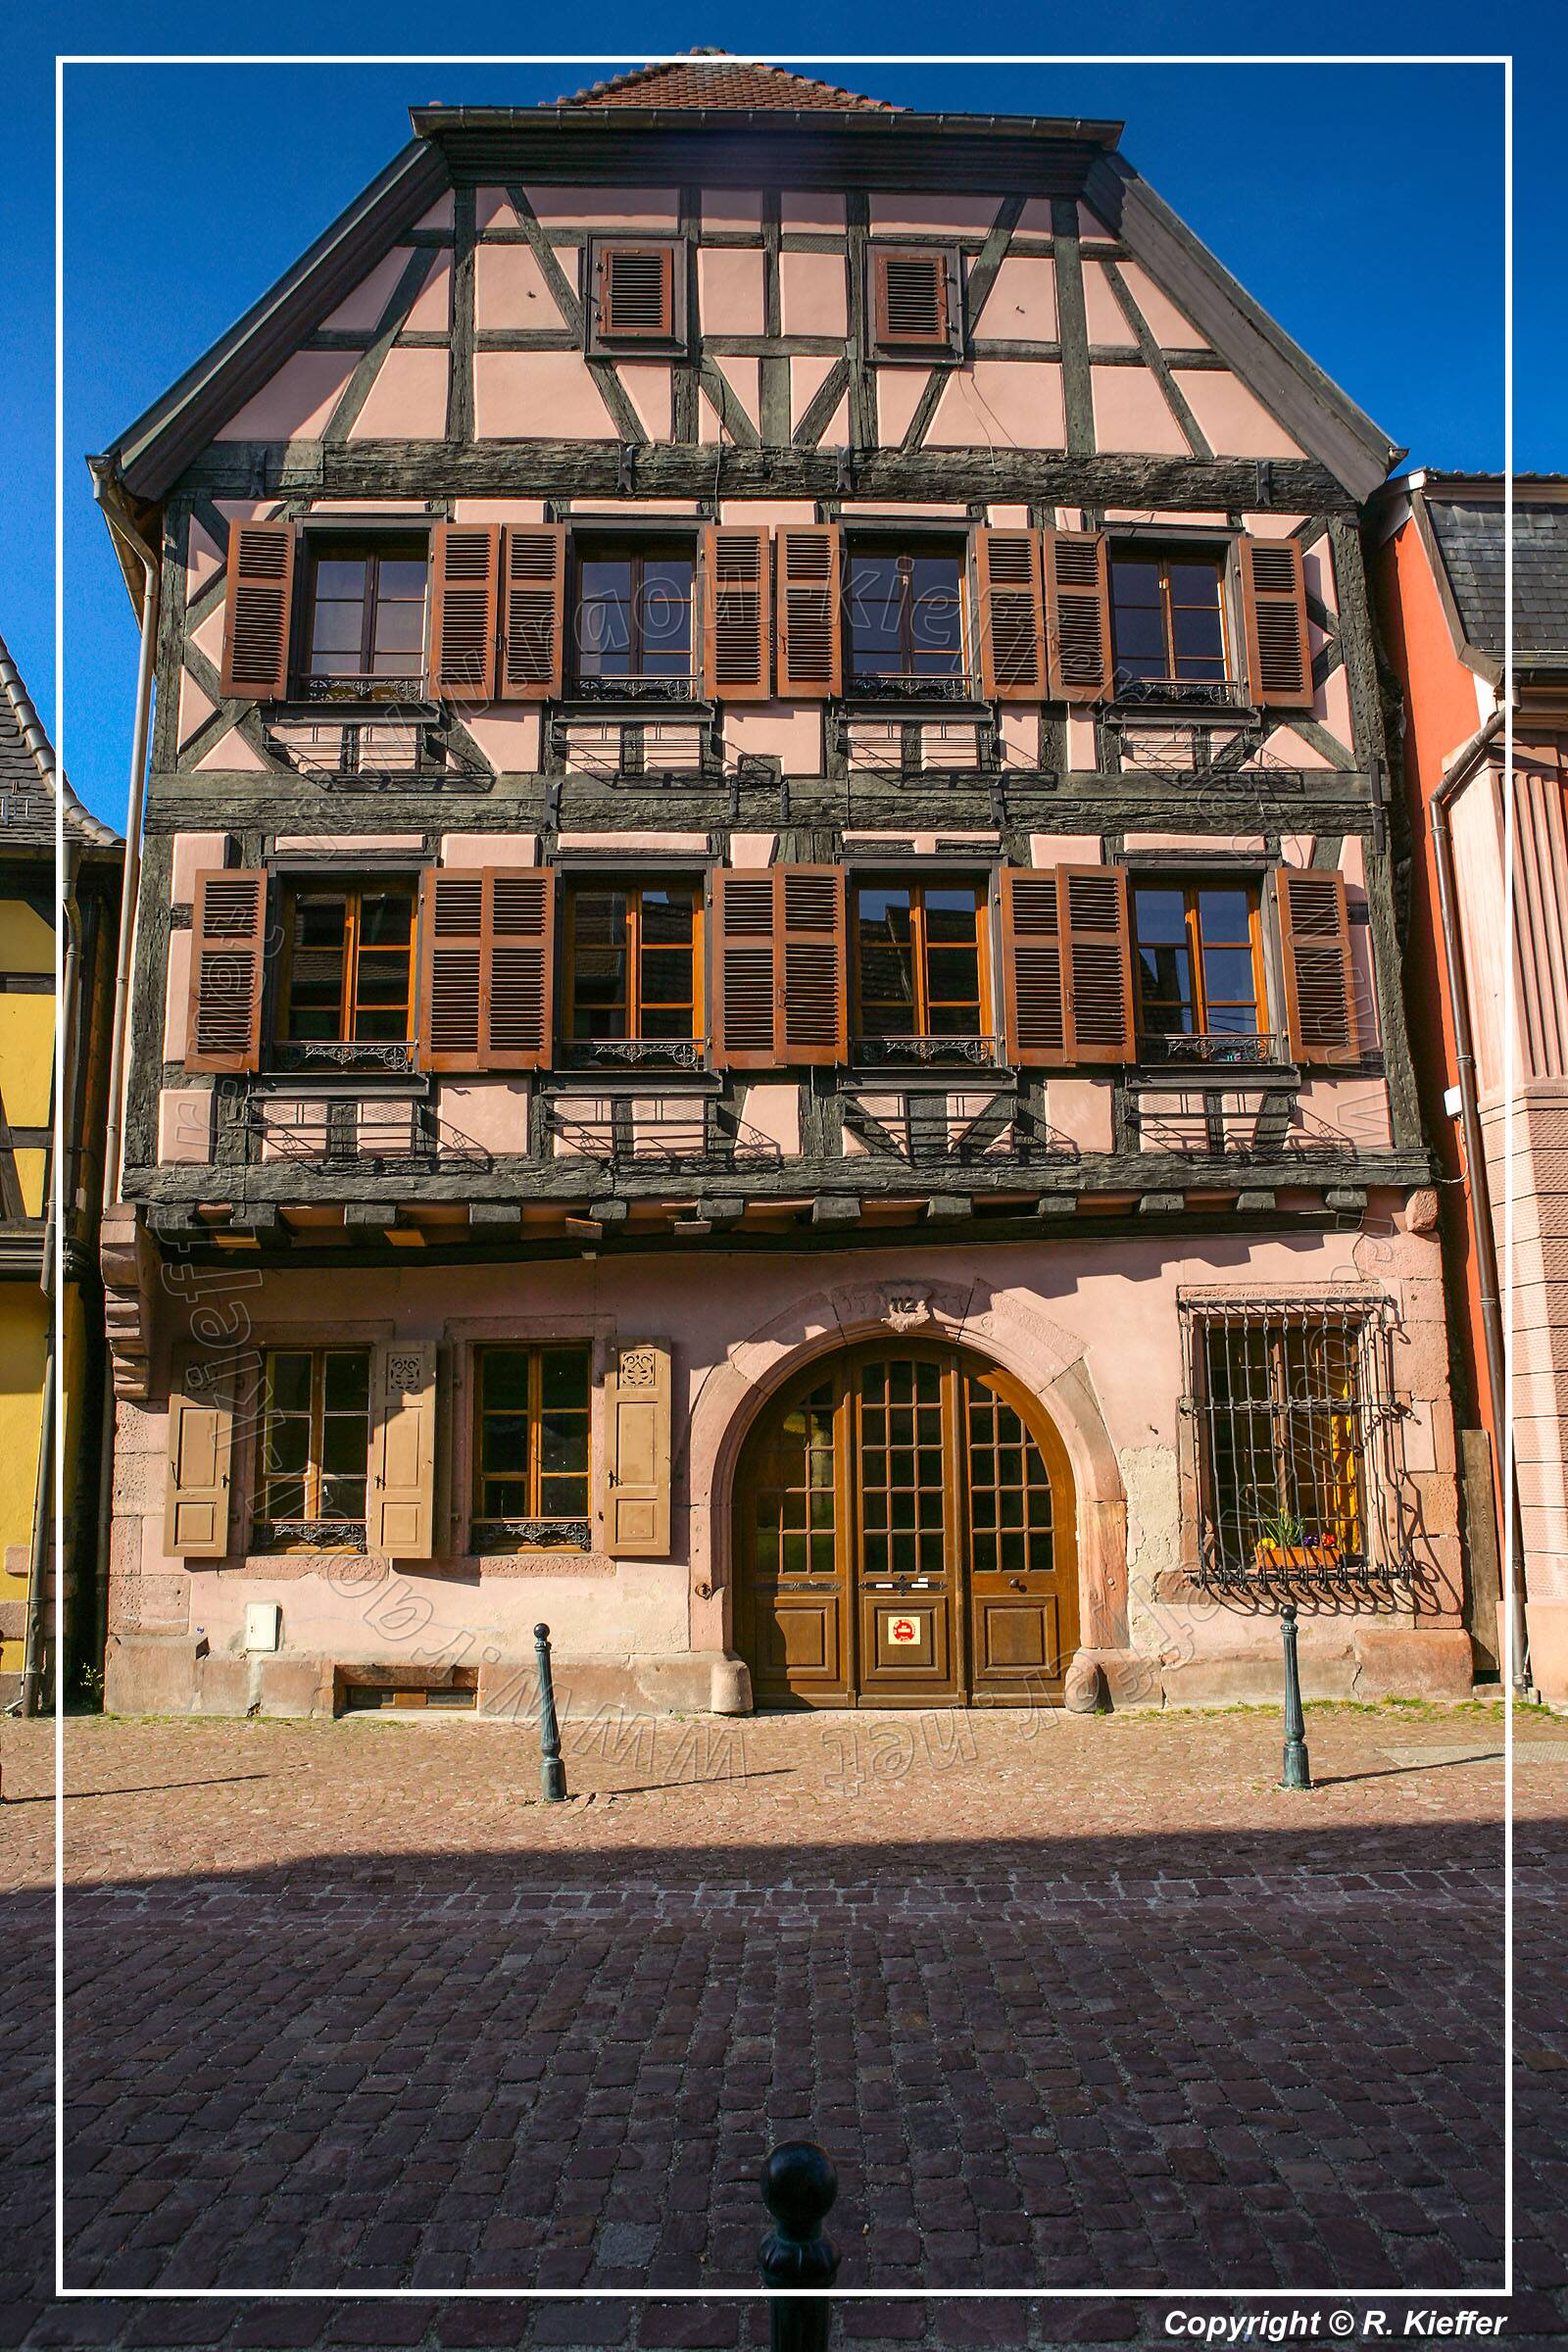 kaysersberg photo gallery kaysersberg lays north west of colmar on the eastern slopes of the. Black Bedroom Furniture Sets. Home Design Ideas